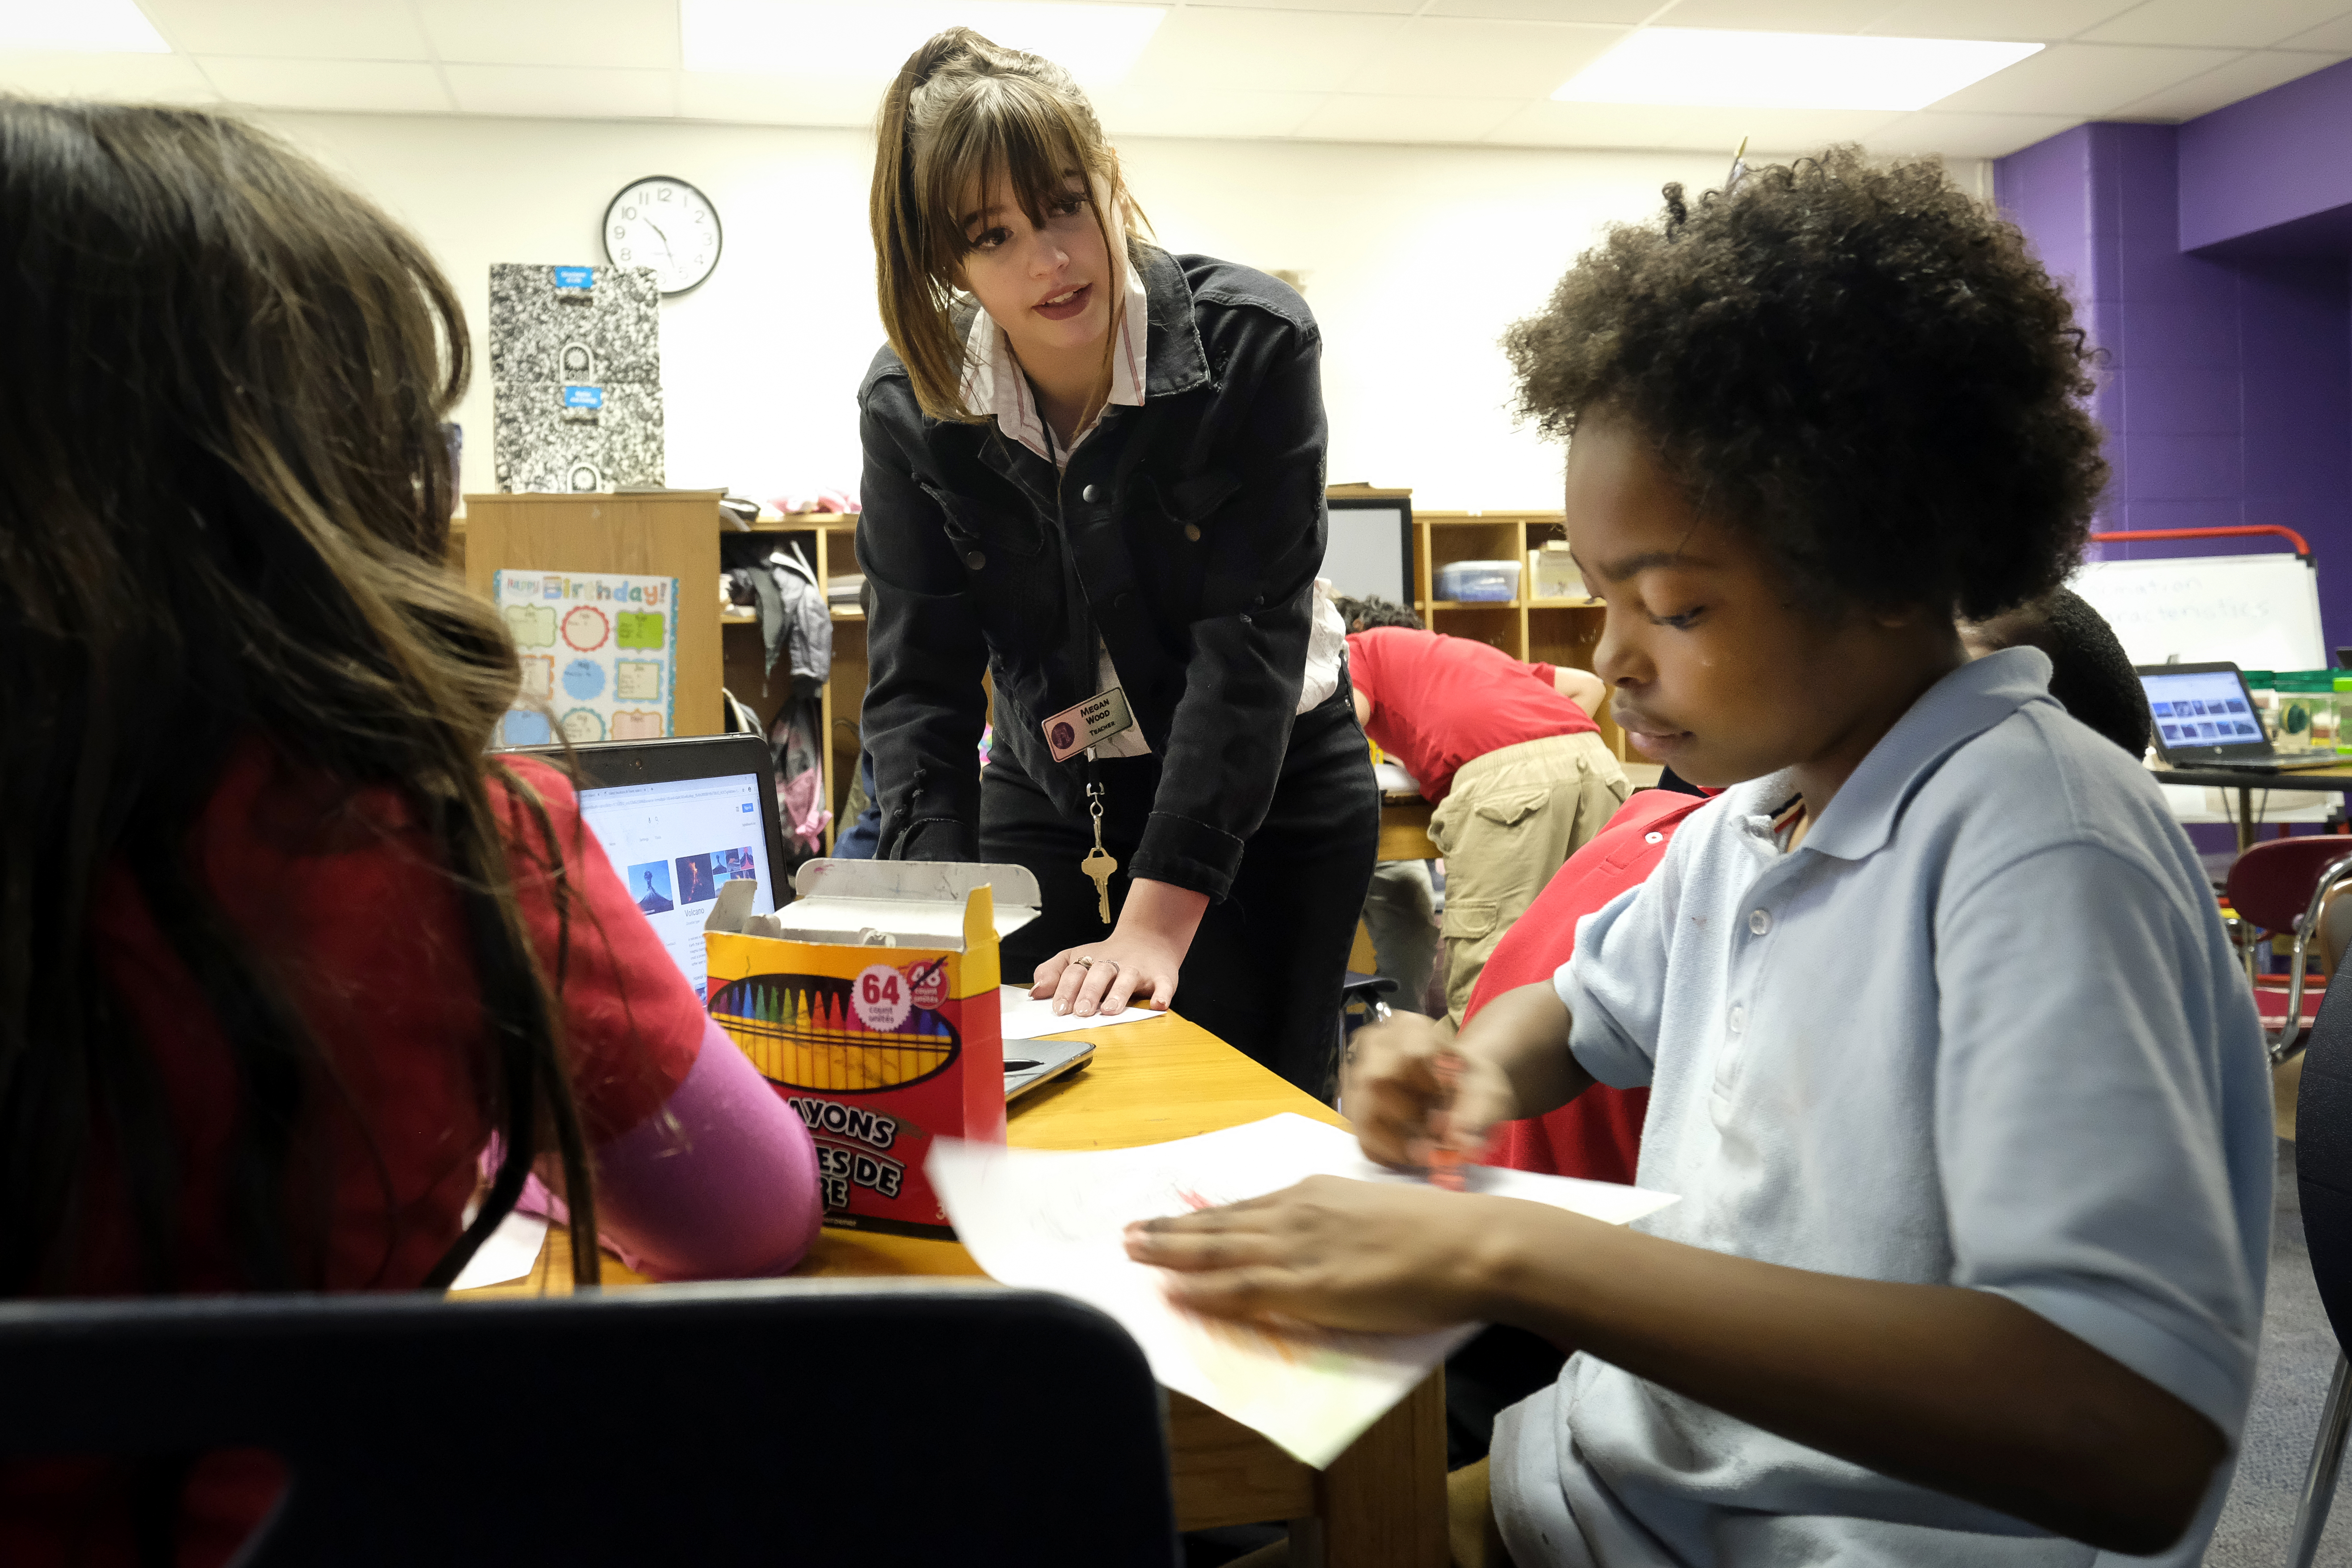 A teacher talks with students sitting at a table in a classroom at Thomas Gregg Neighborhood School, an elementary school in Indianapolis, Indiana.